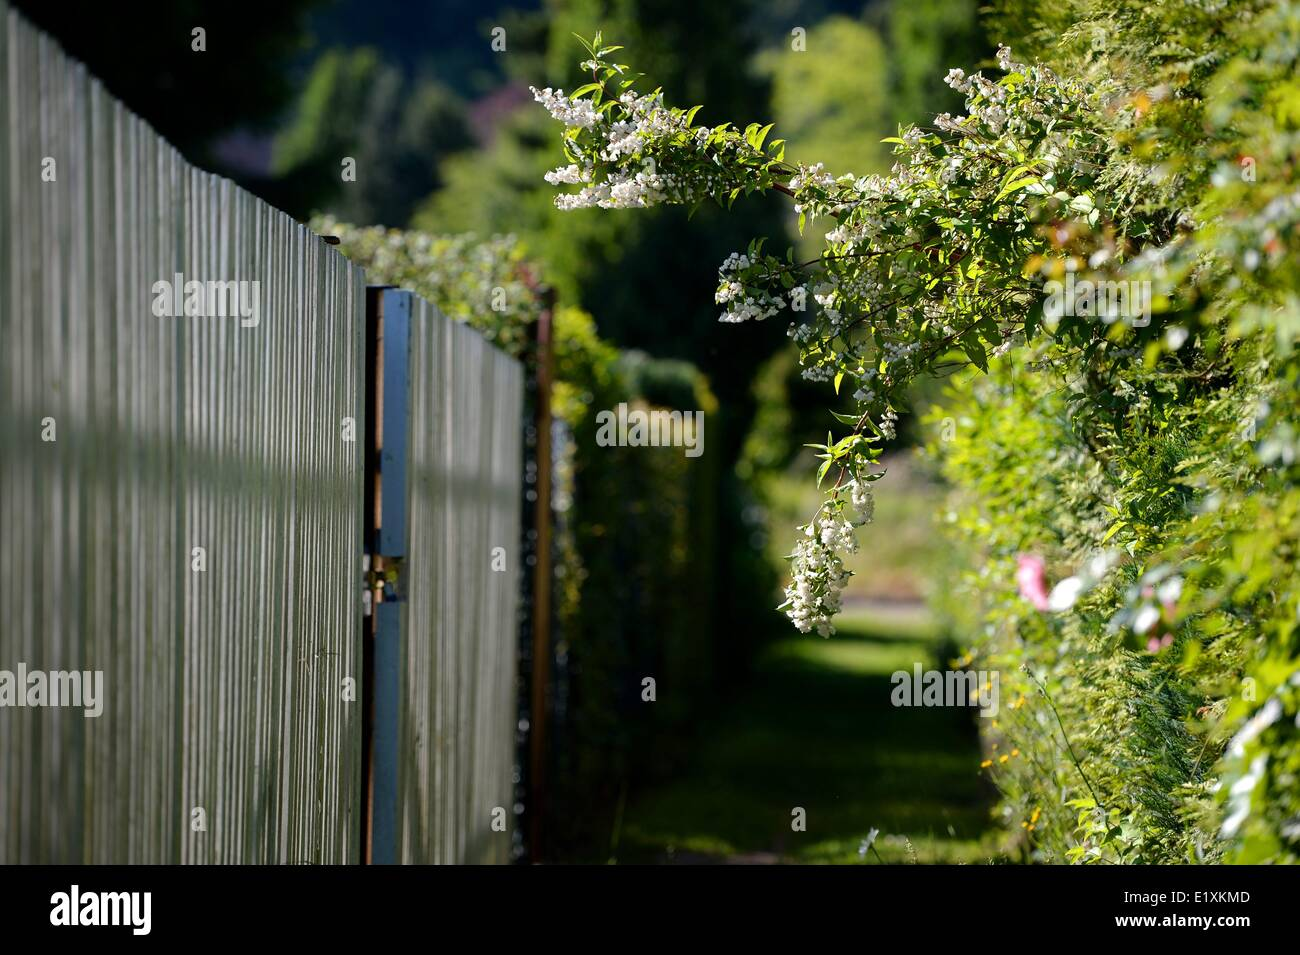 A walkway along of fences in a garden in germany, 06. June 2014. Photo: Frank May Stock Photo